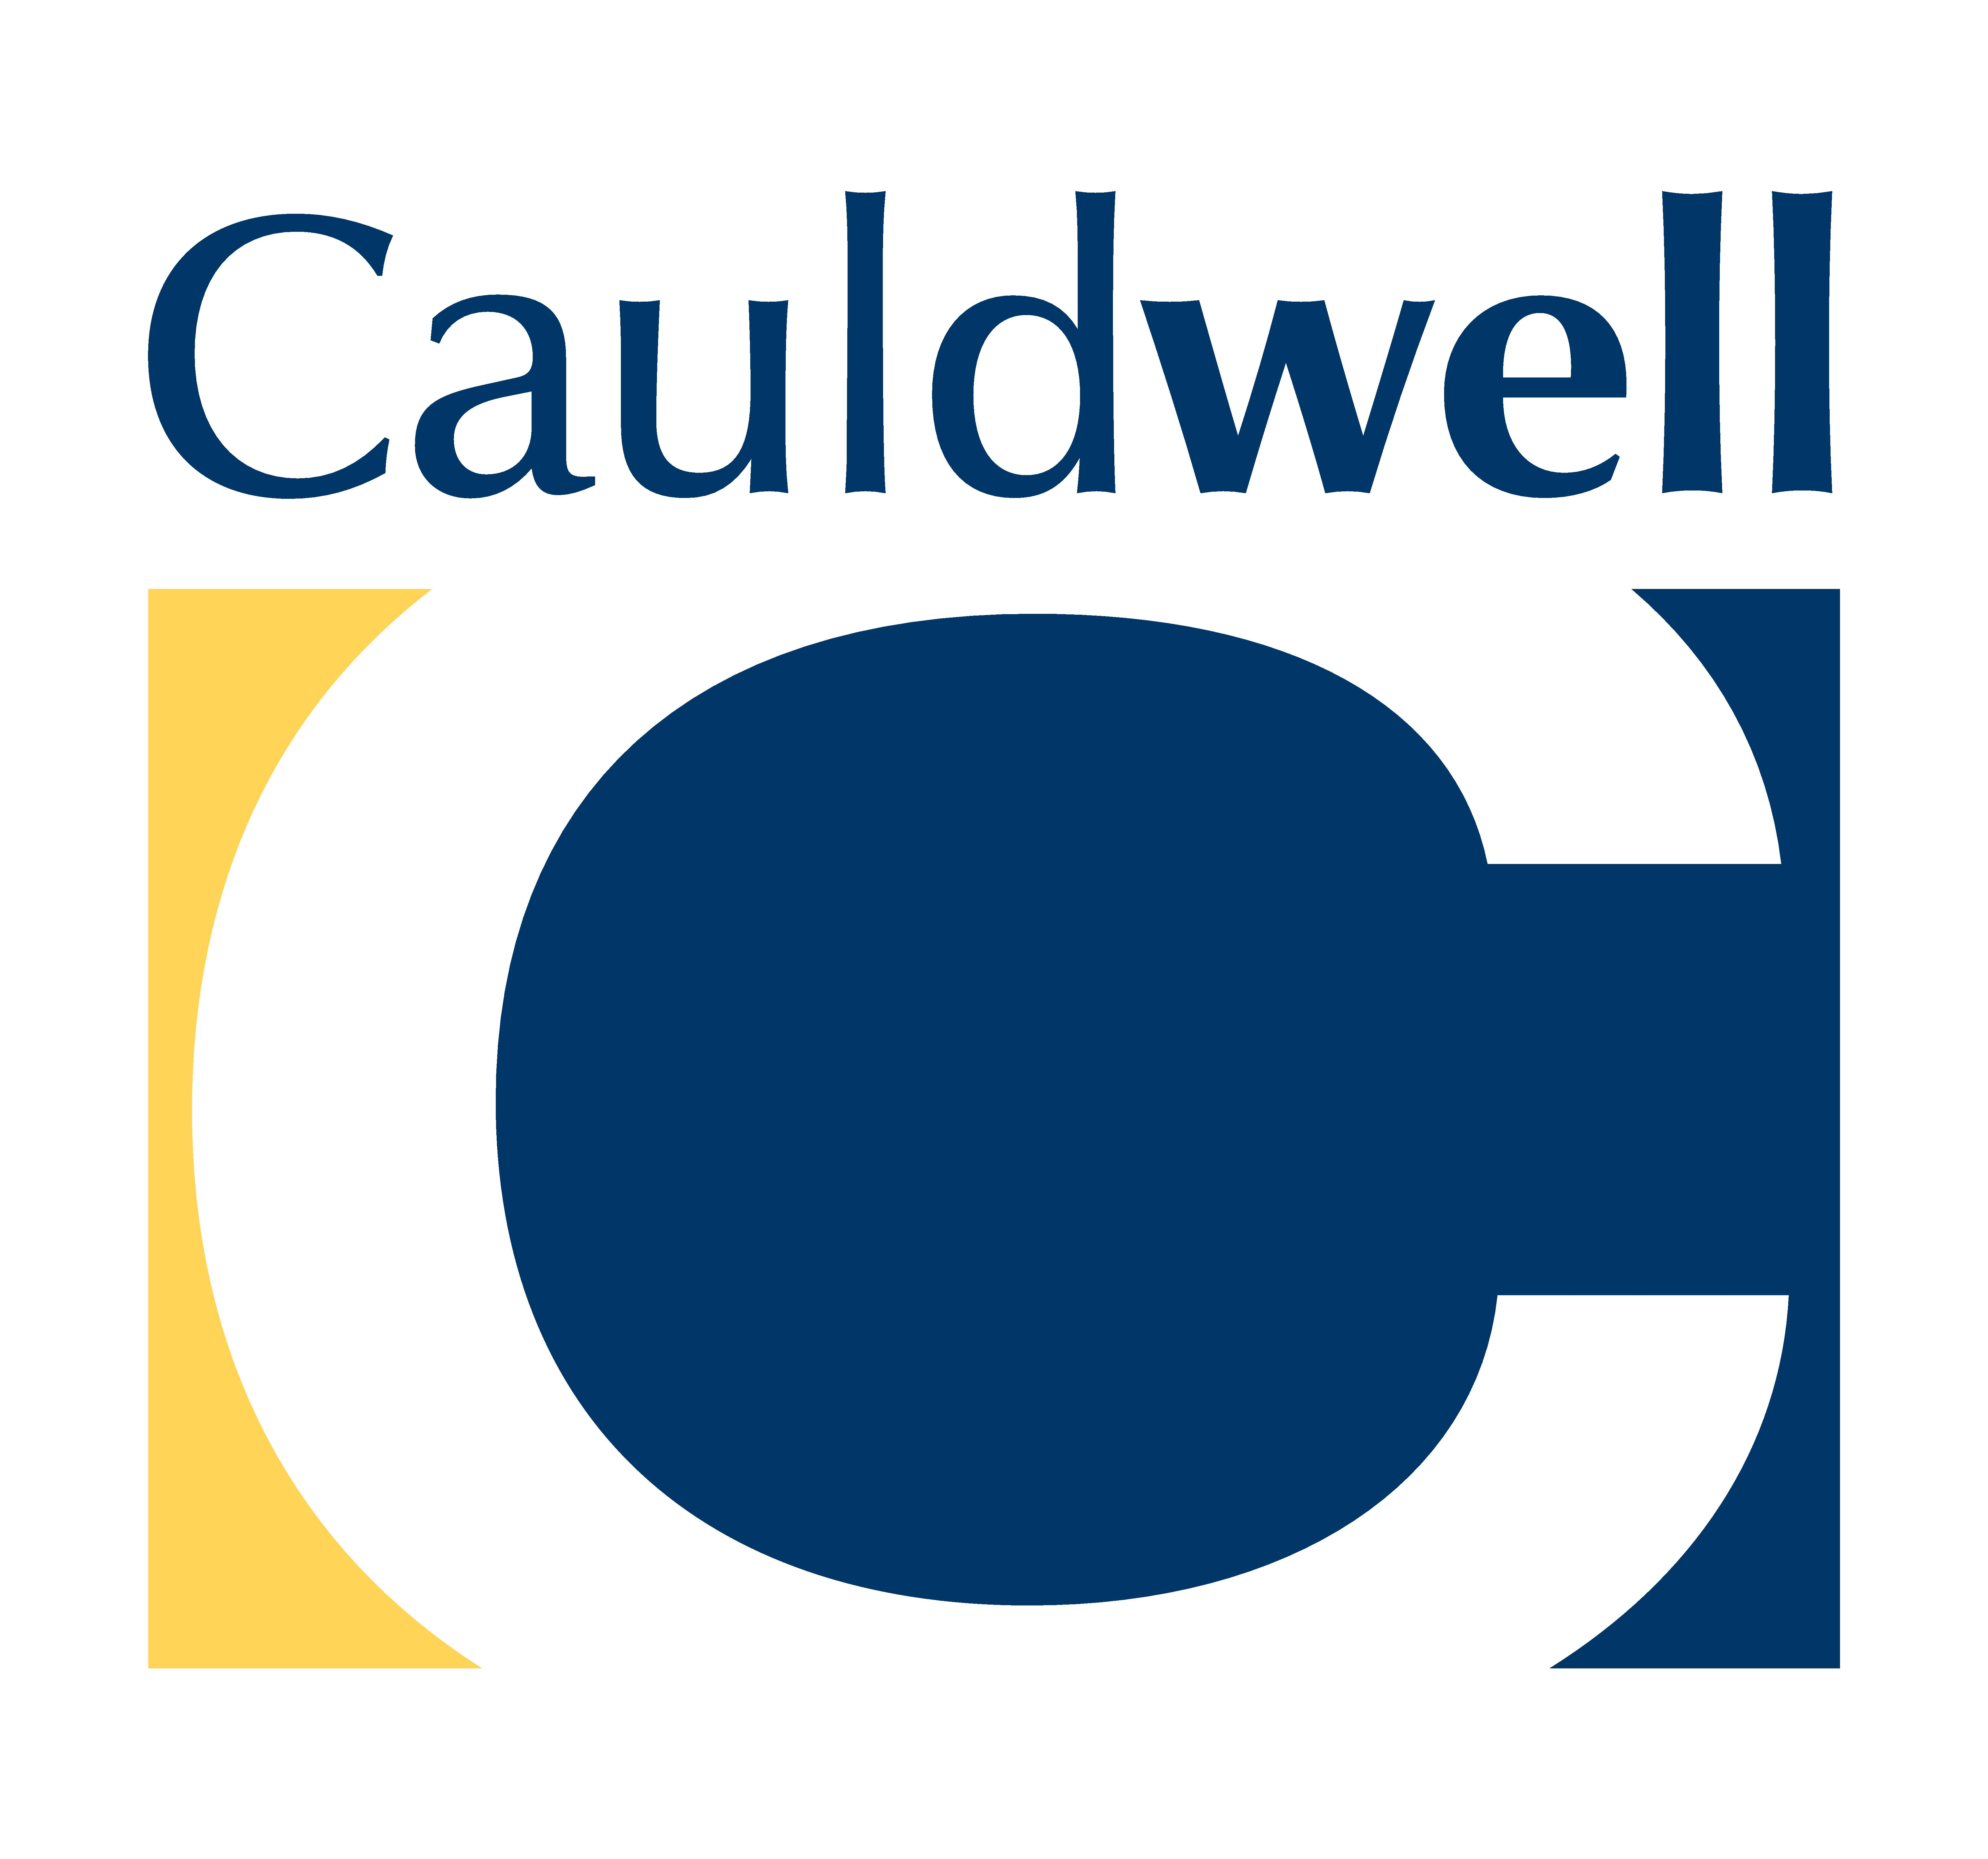 Cauldwell Property Services